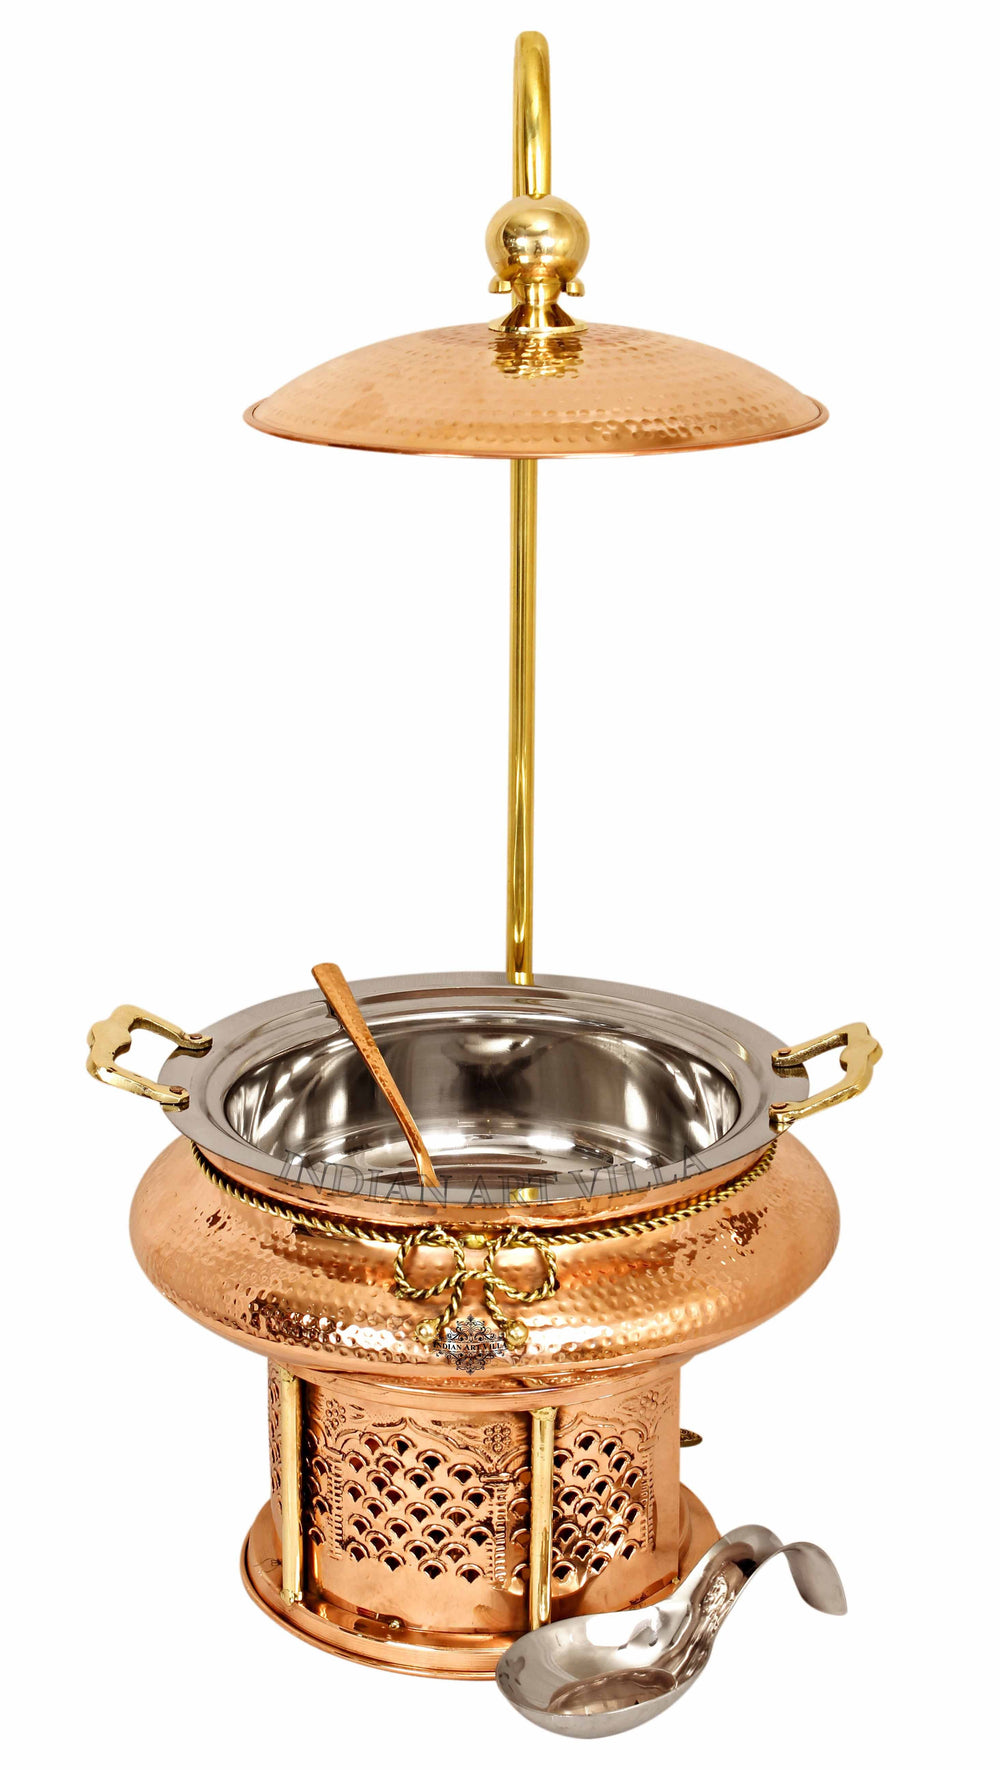 Steel Copper Hammered Chafing Dish with Sigdi Stand & Handle - 135.25 Oz | 202.88 Oz | 270.51 Oz Chafing Dishes CCB-DW